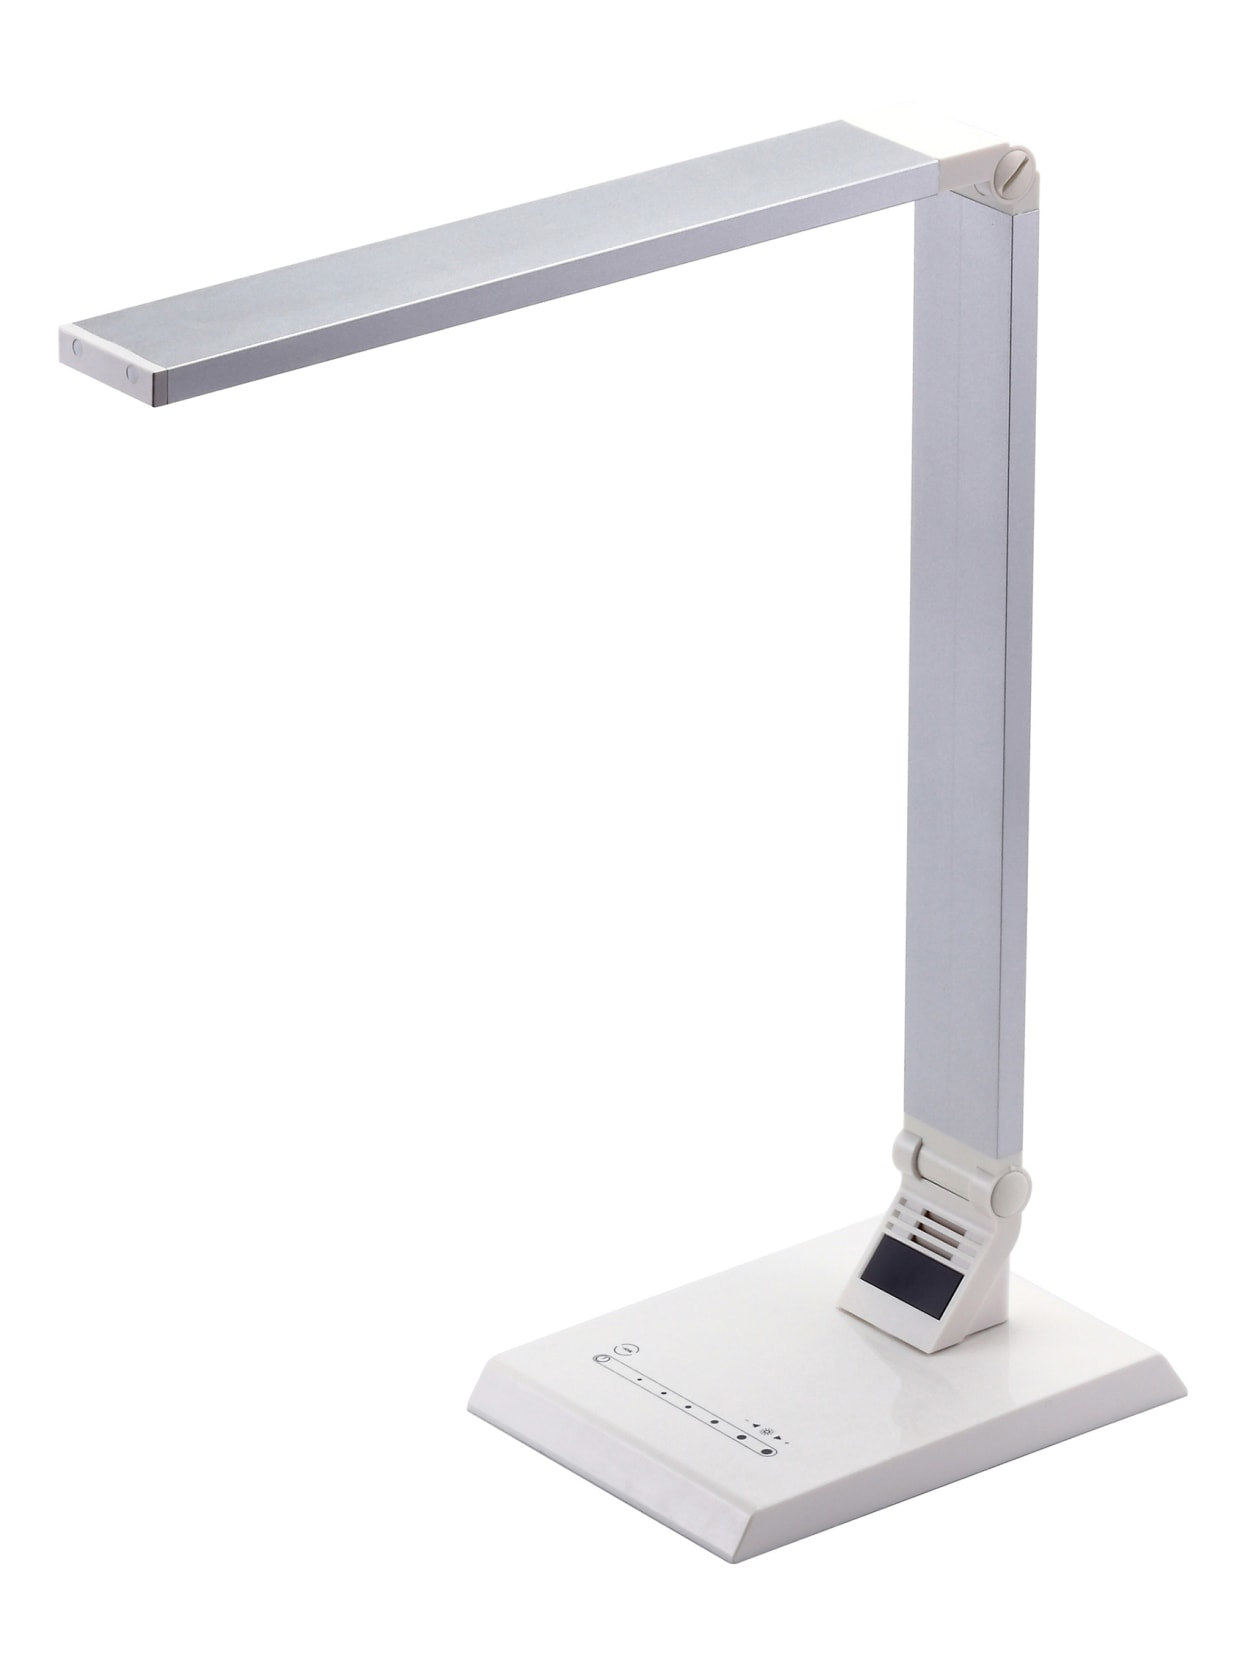 Bostitch Air Purifying Led Lamp White Office Depot